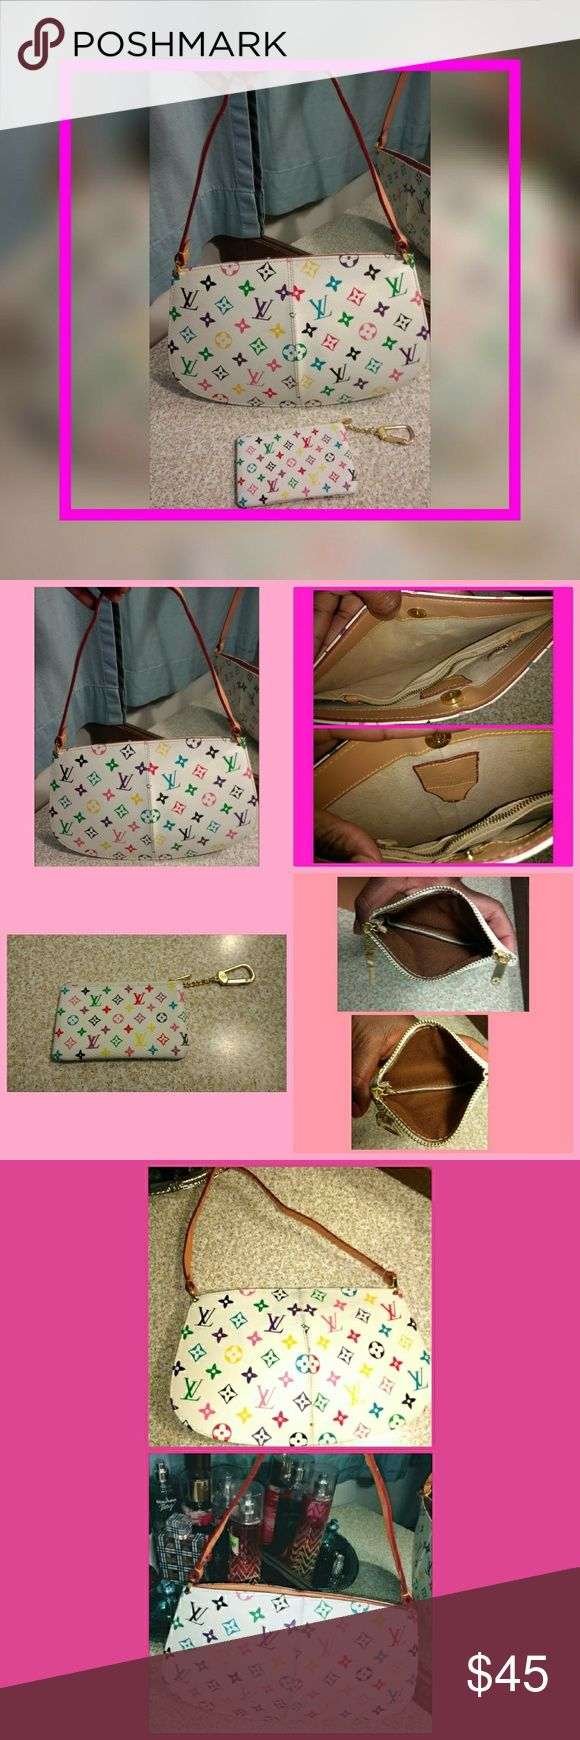 """Louis Vuitton pastel purse & wallet Price reflects If you don't like the listing, LEAVE!  PURSE: -magnetic snap closure -split compartments (2 & and a middle zippered compartment) -17"""" shoulder strap -light markings (see pic #5) -11"""" x 7""""  WALLET: -top zip closure -keychain attachment (gets stuck a little, must push up/in to open) -5"""" x 3""""  Both feature the pastel LV print with gold tone hardware Purchased in NYC Louis Vuitton Bags"""